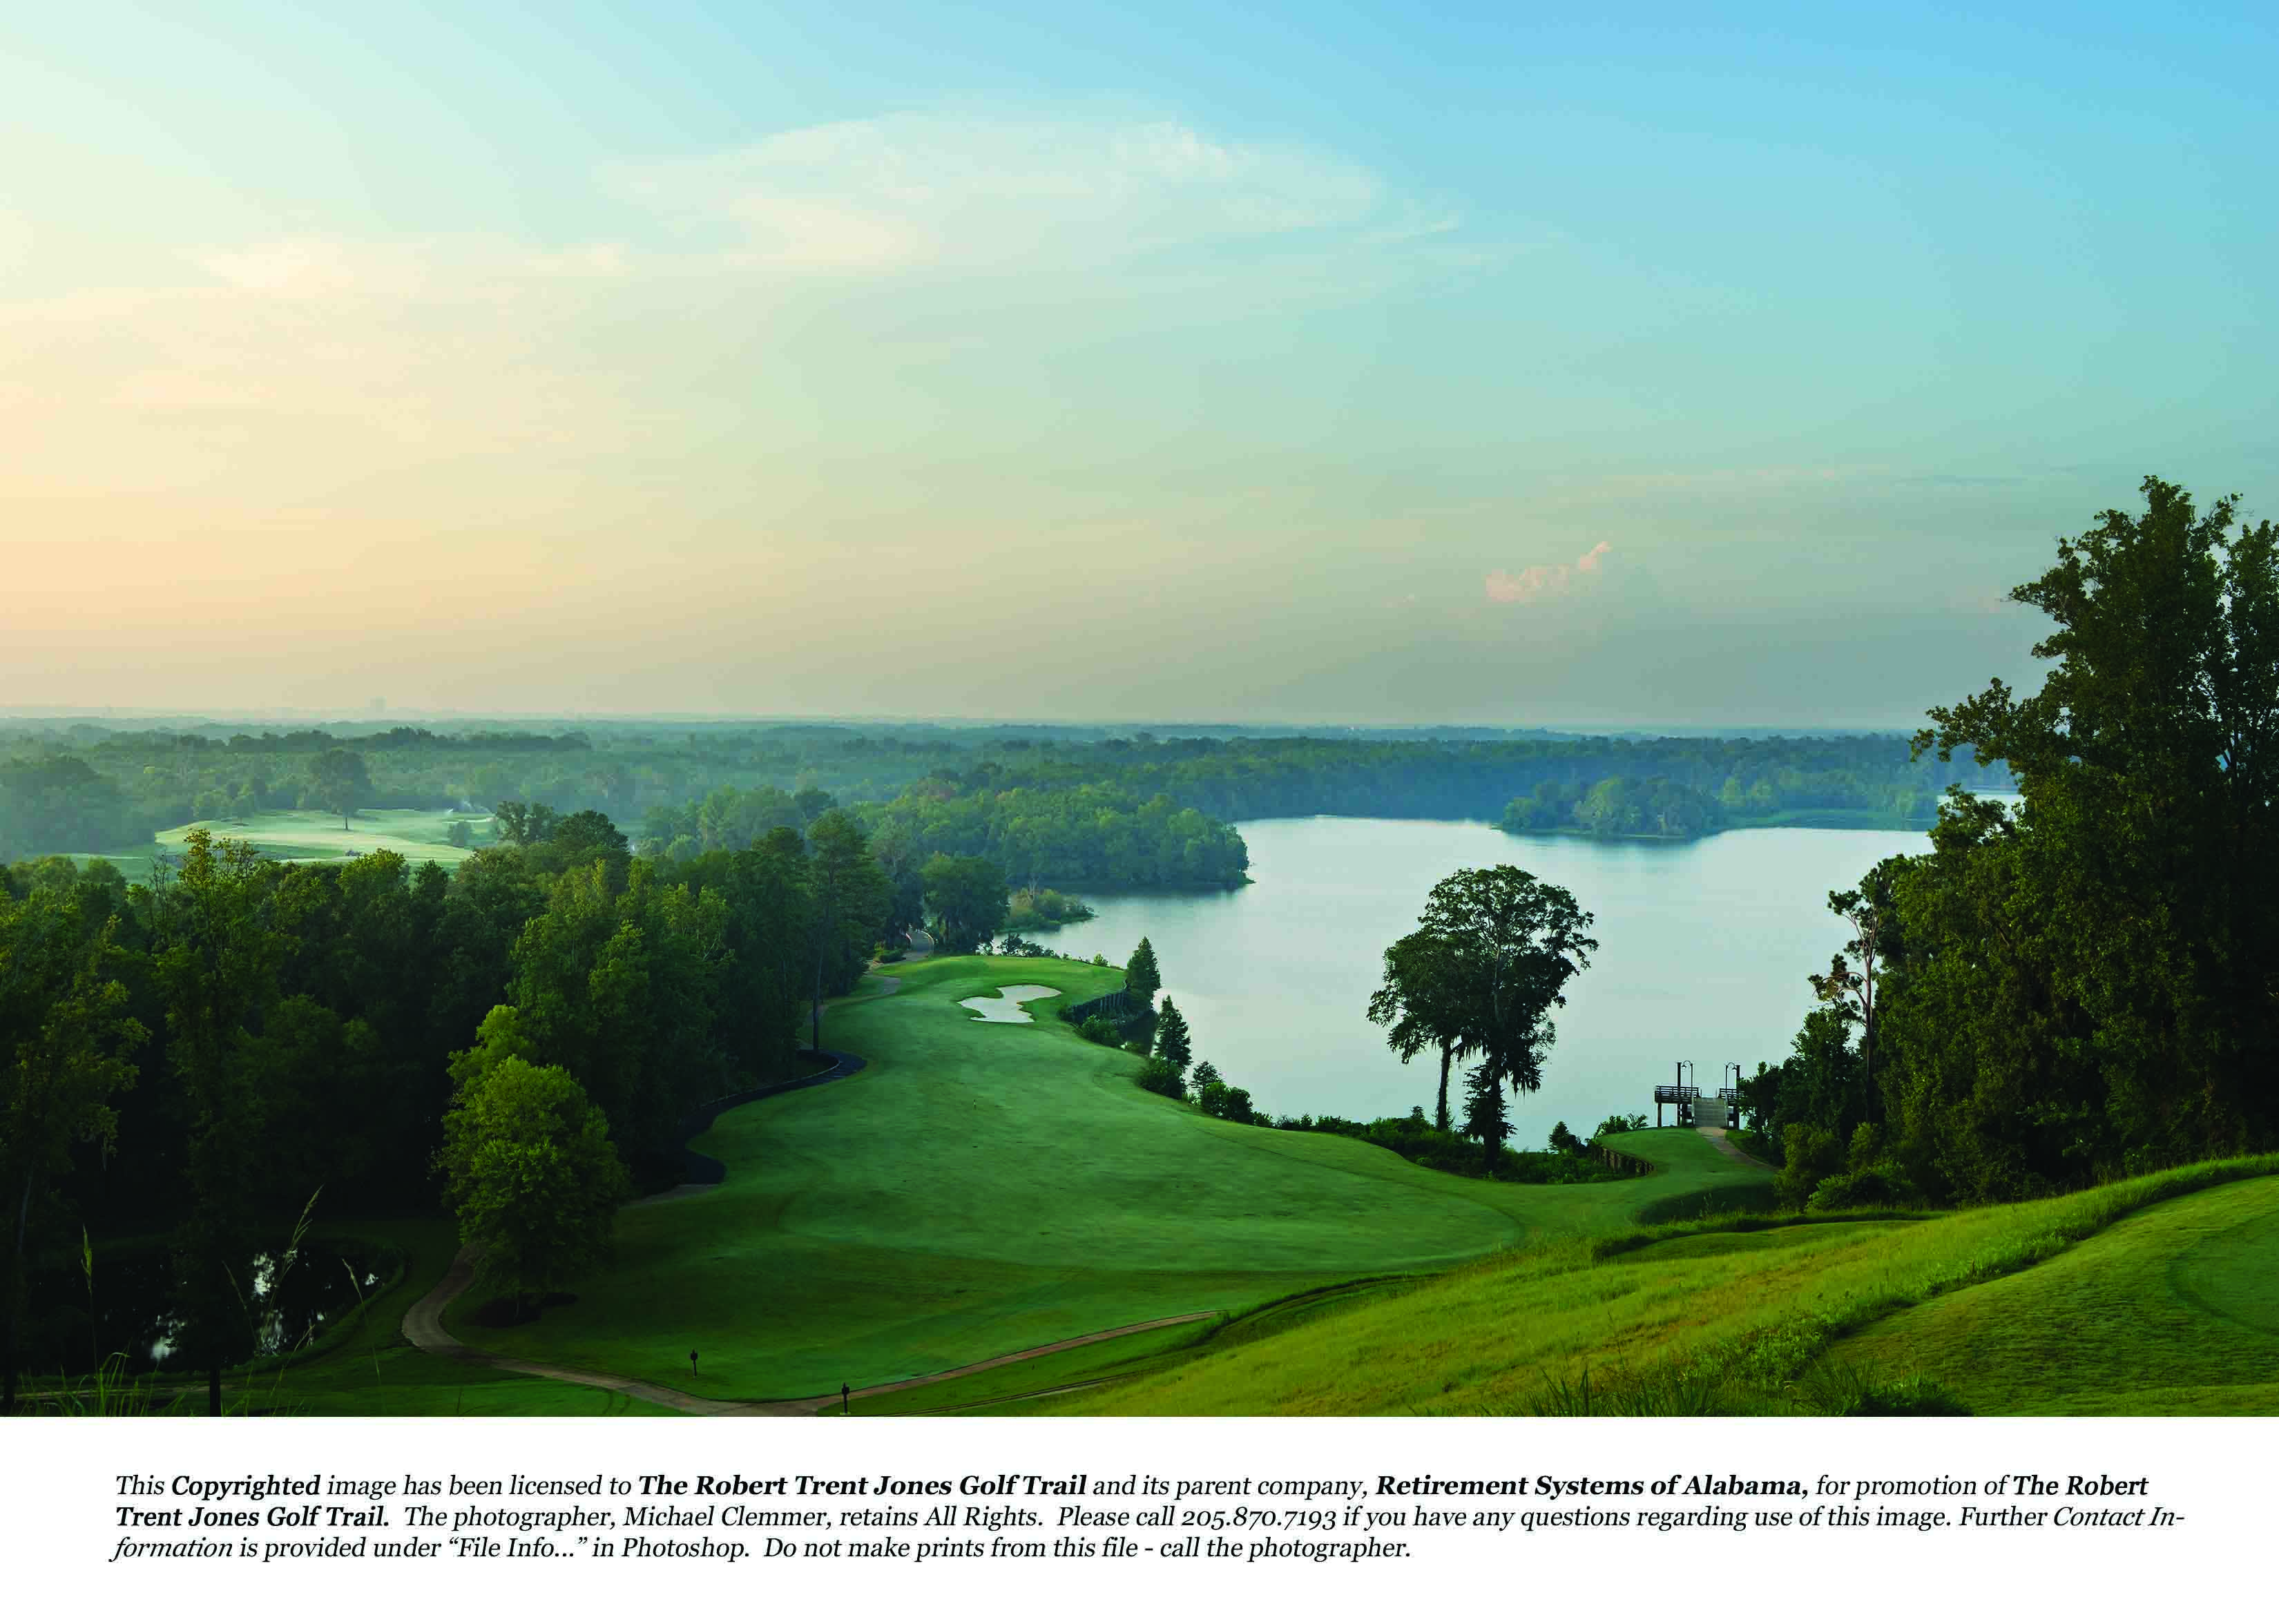 Robert Trent Jones Golf Trail Celebrates Over 20 Years of World-Class Golf